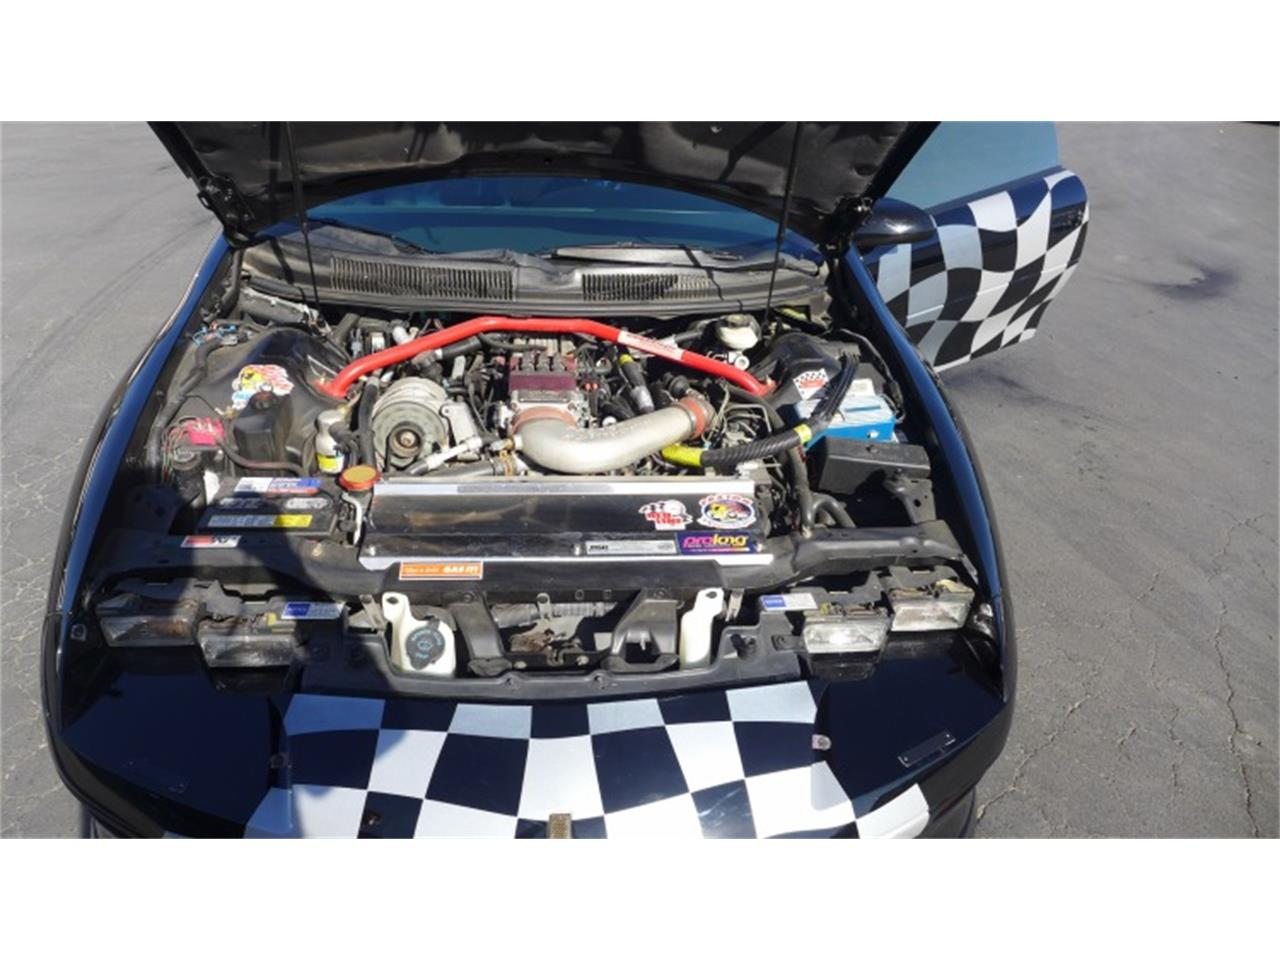 Large Picture of '96 Chevrolet Camaro Z28 located in Sparks Nevada Auction Vehicle - QGIF